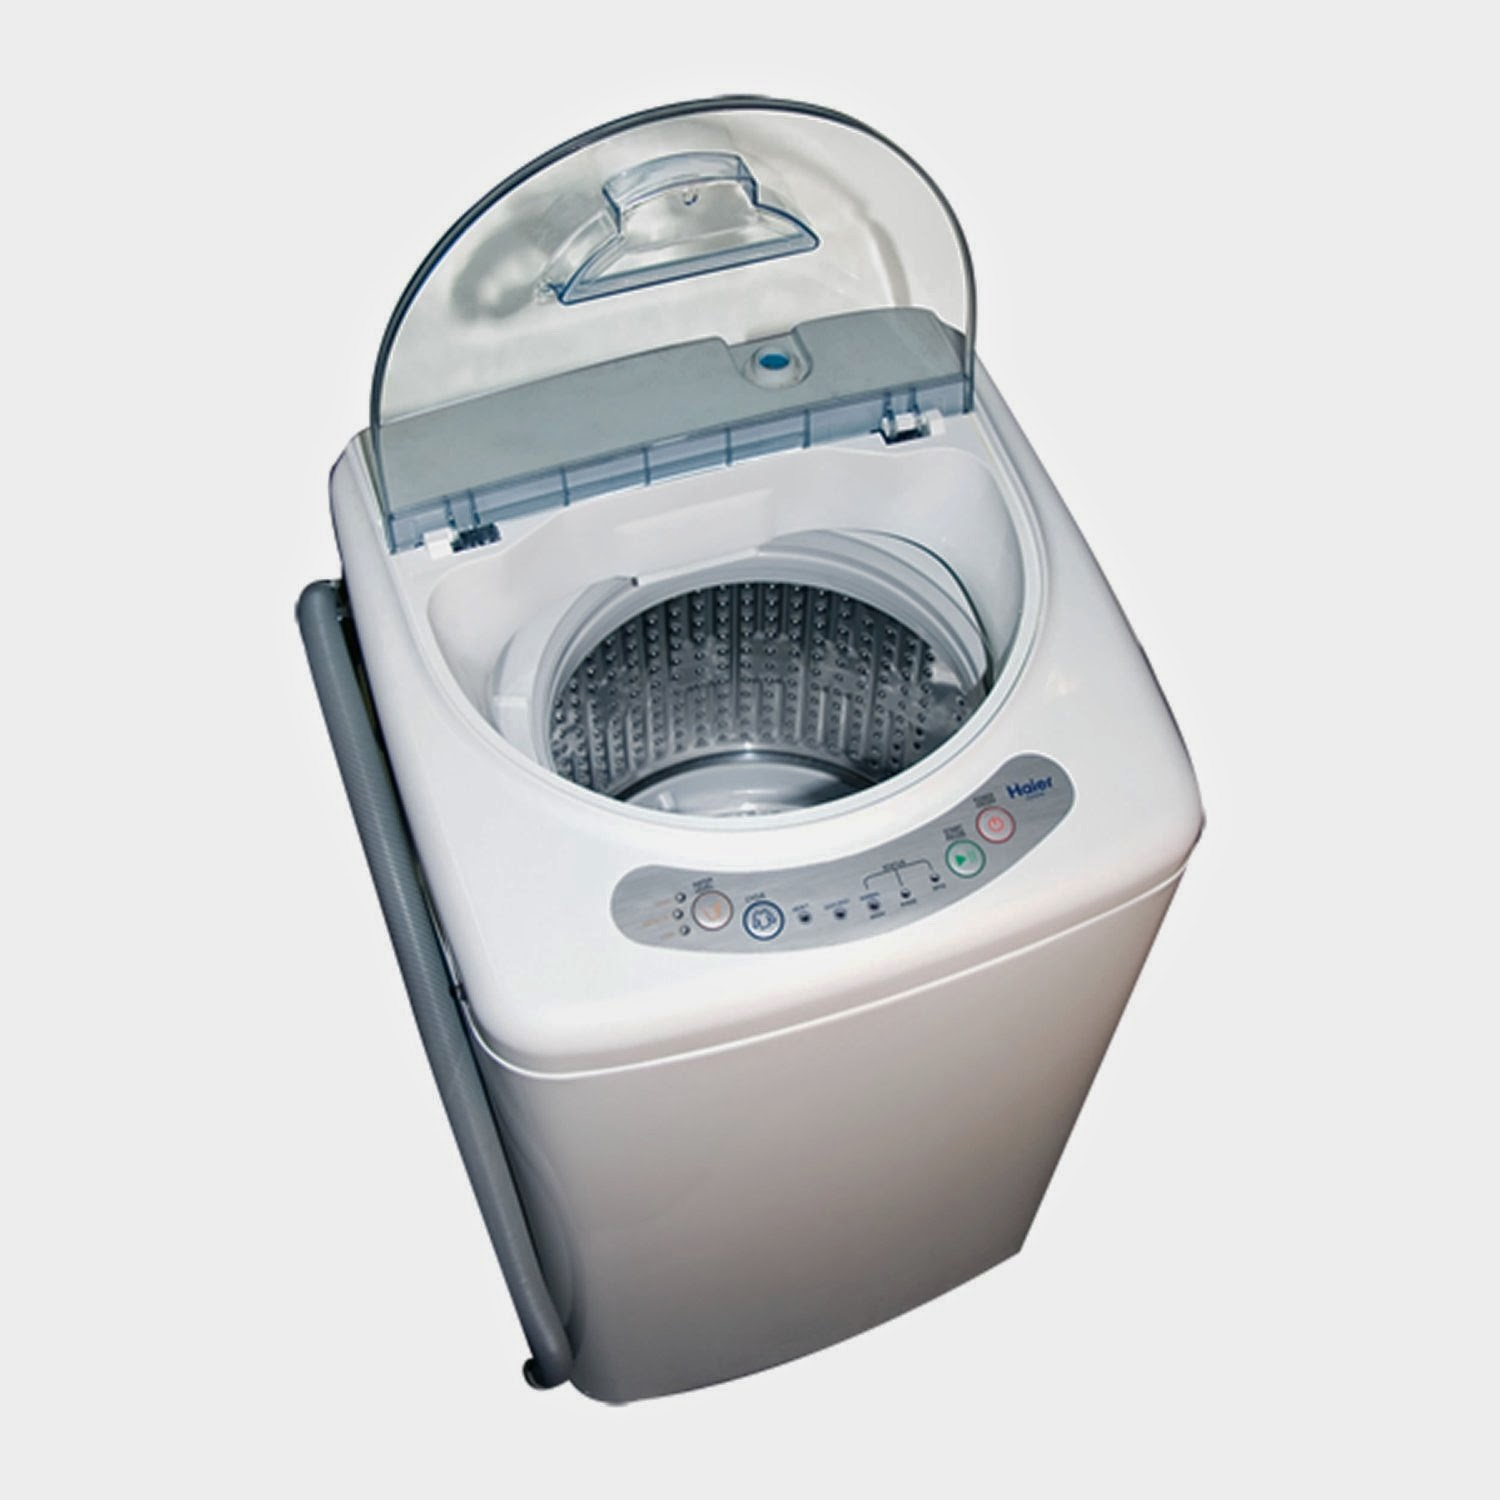 small washer and dryer: small apartment washer and dryer